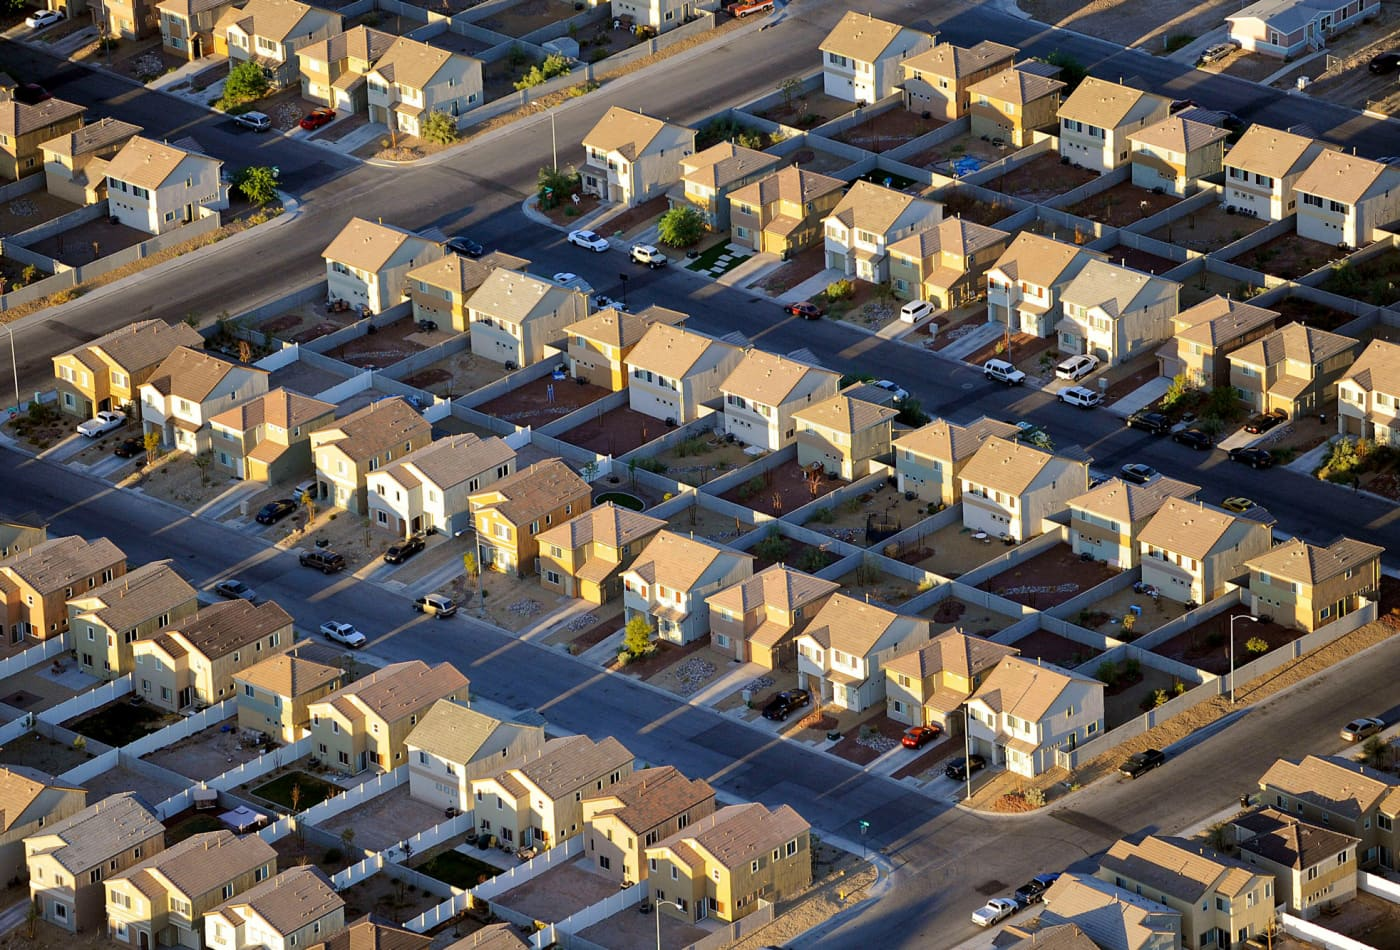 Next year will be hard on the housing market, especially in these big cities